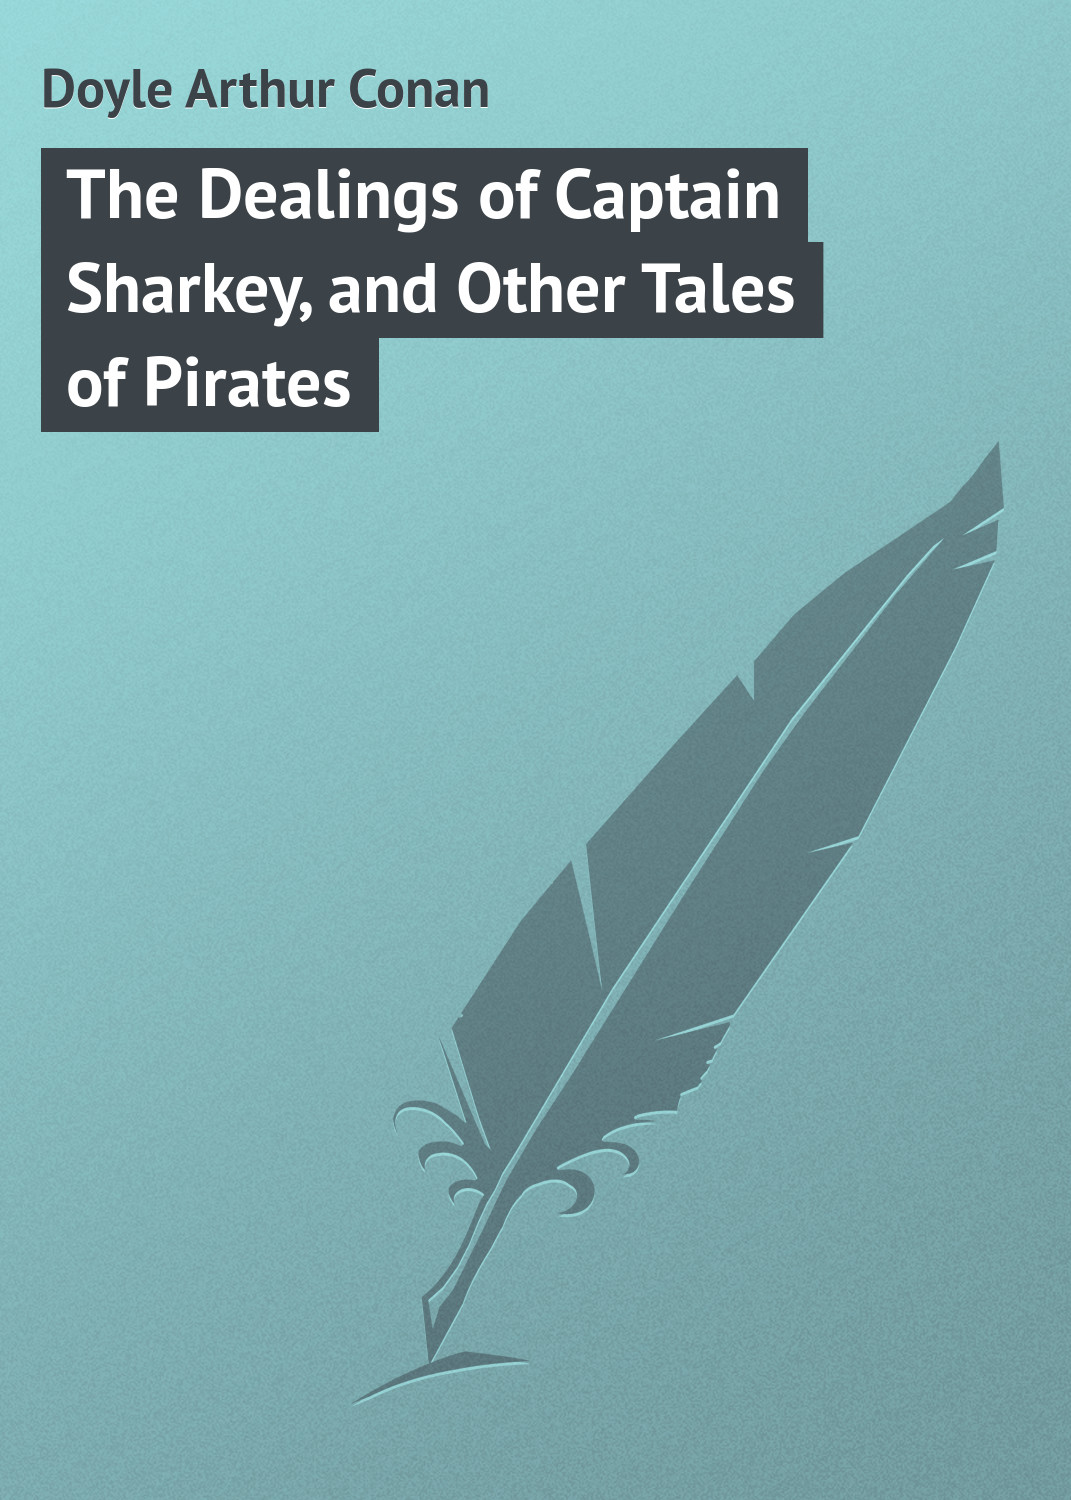 цена Doyle Arthur Conan The Dealings of Captain Sharkey, and Other Tales of Pirates онлайн в 2017 году